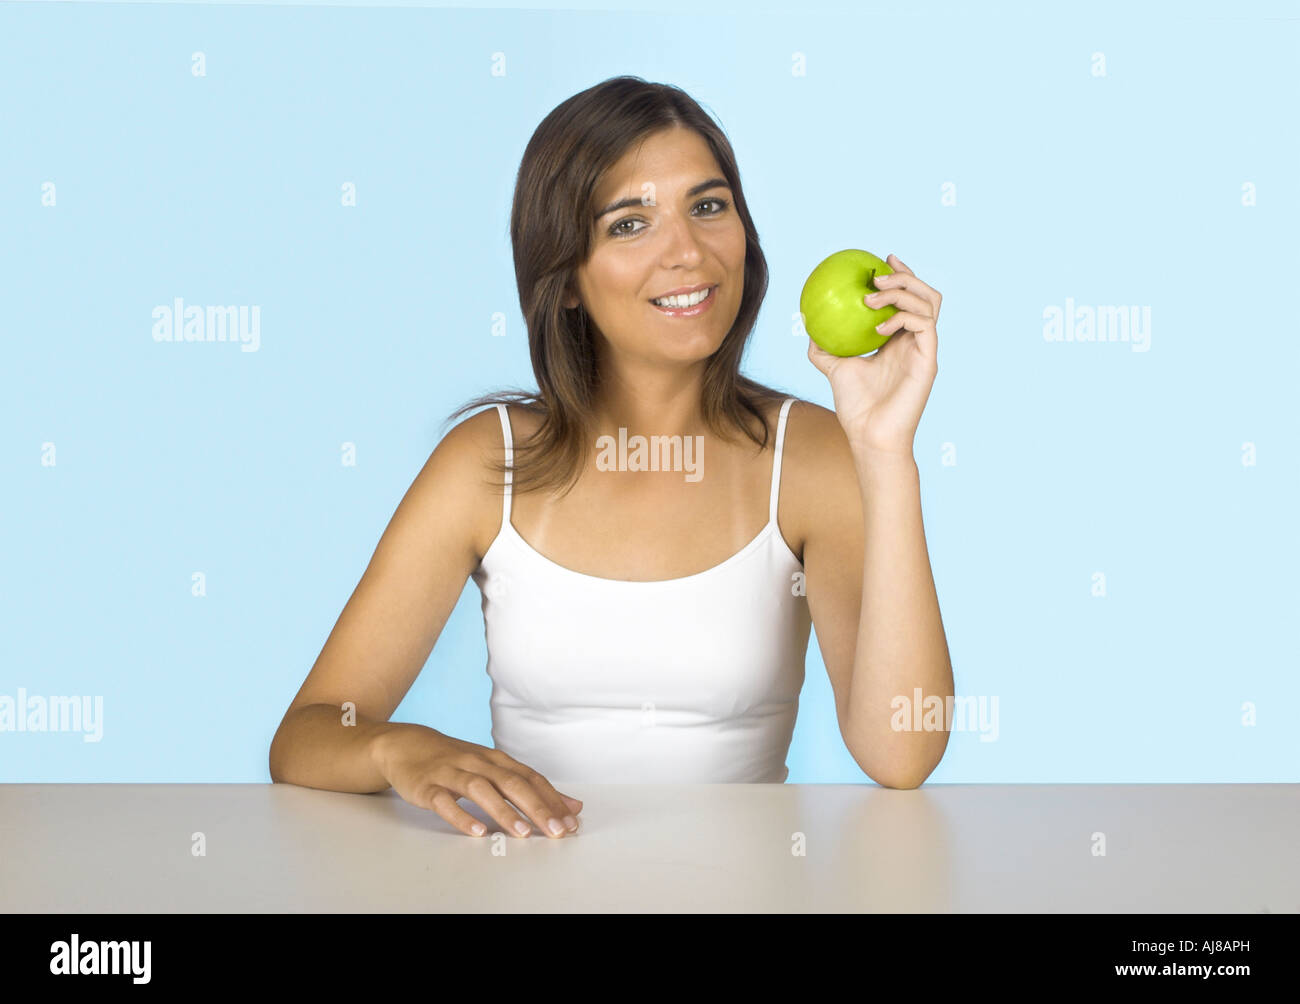 Beautiful young woman holding a green apple - Stock Image